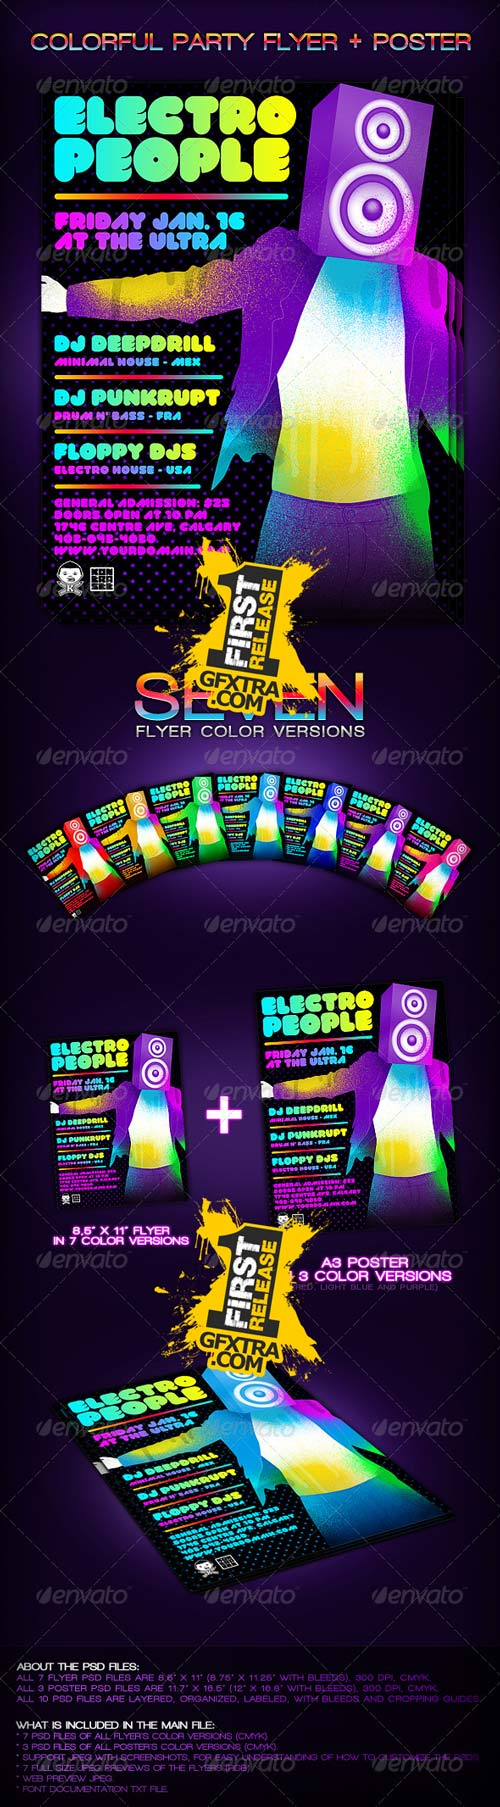 Colorful Party Flyer + Poster - GraphicRiver-REUPLOADED!